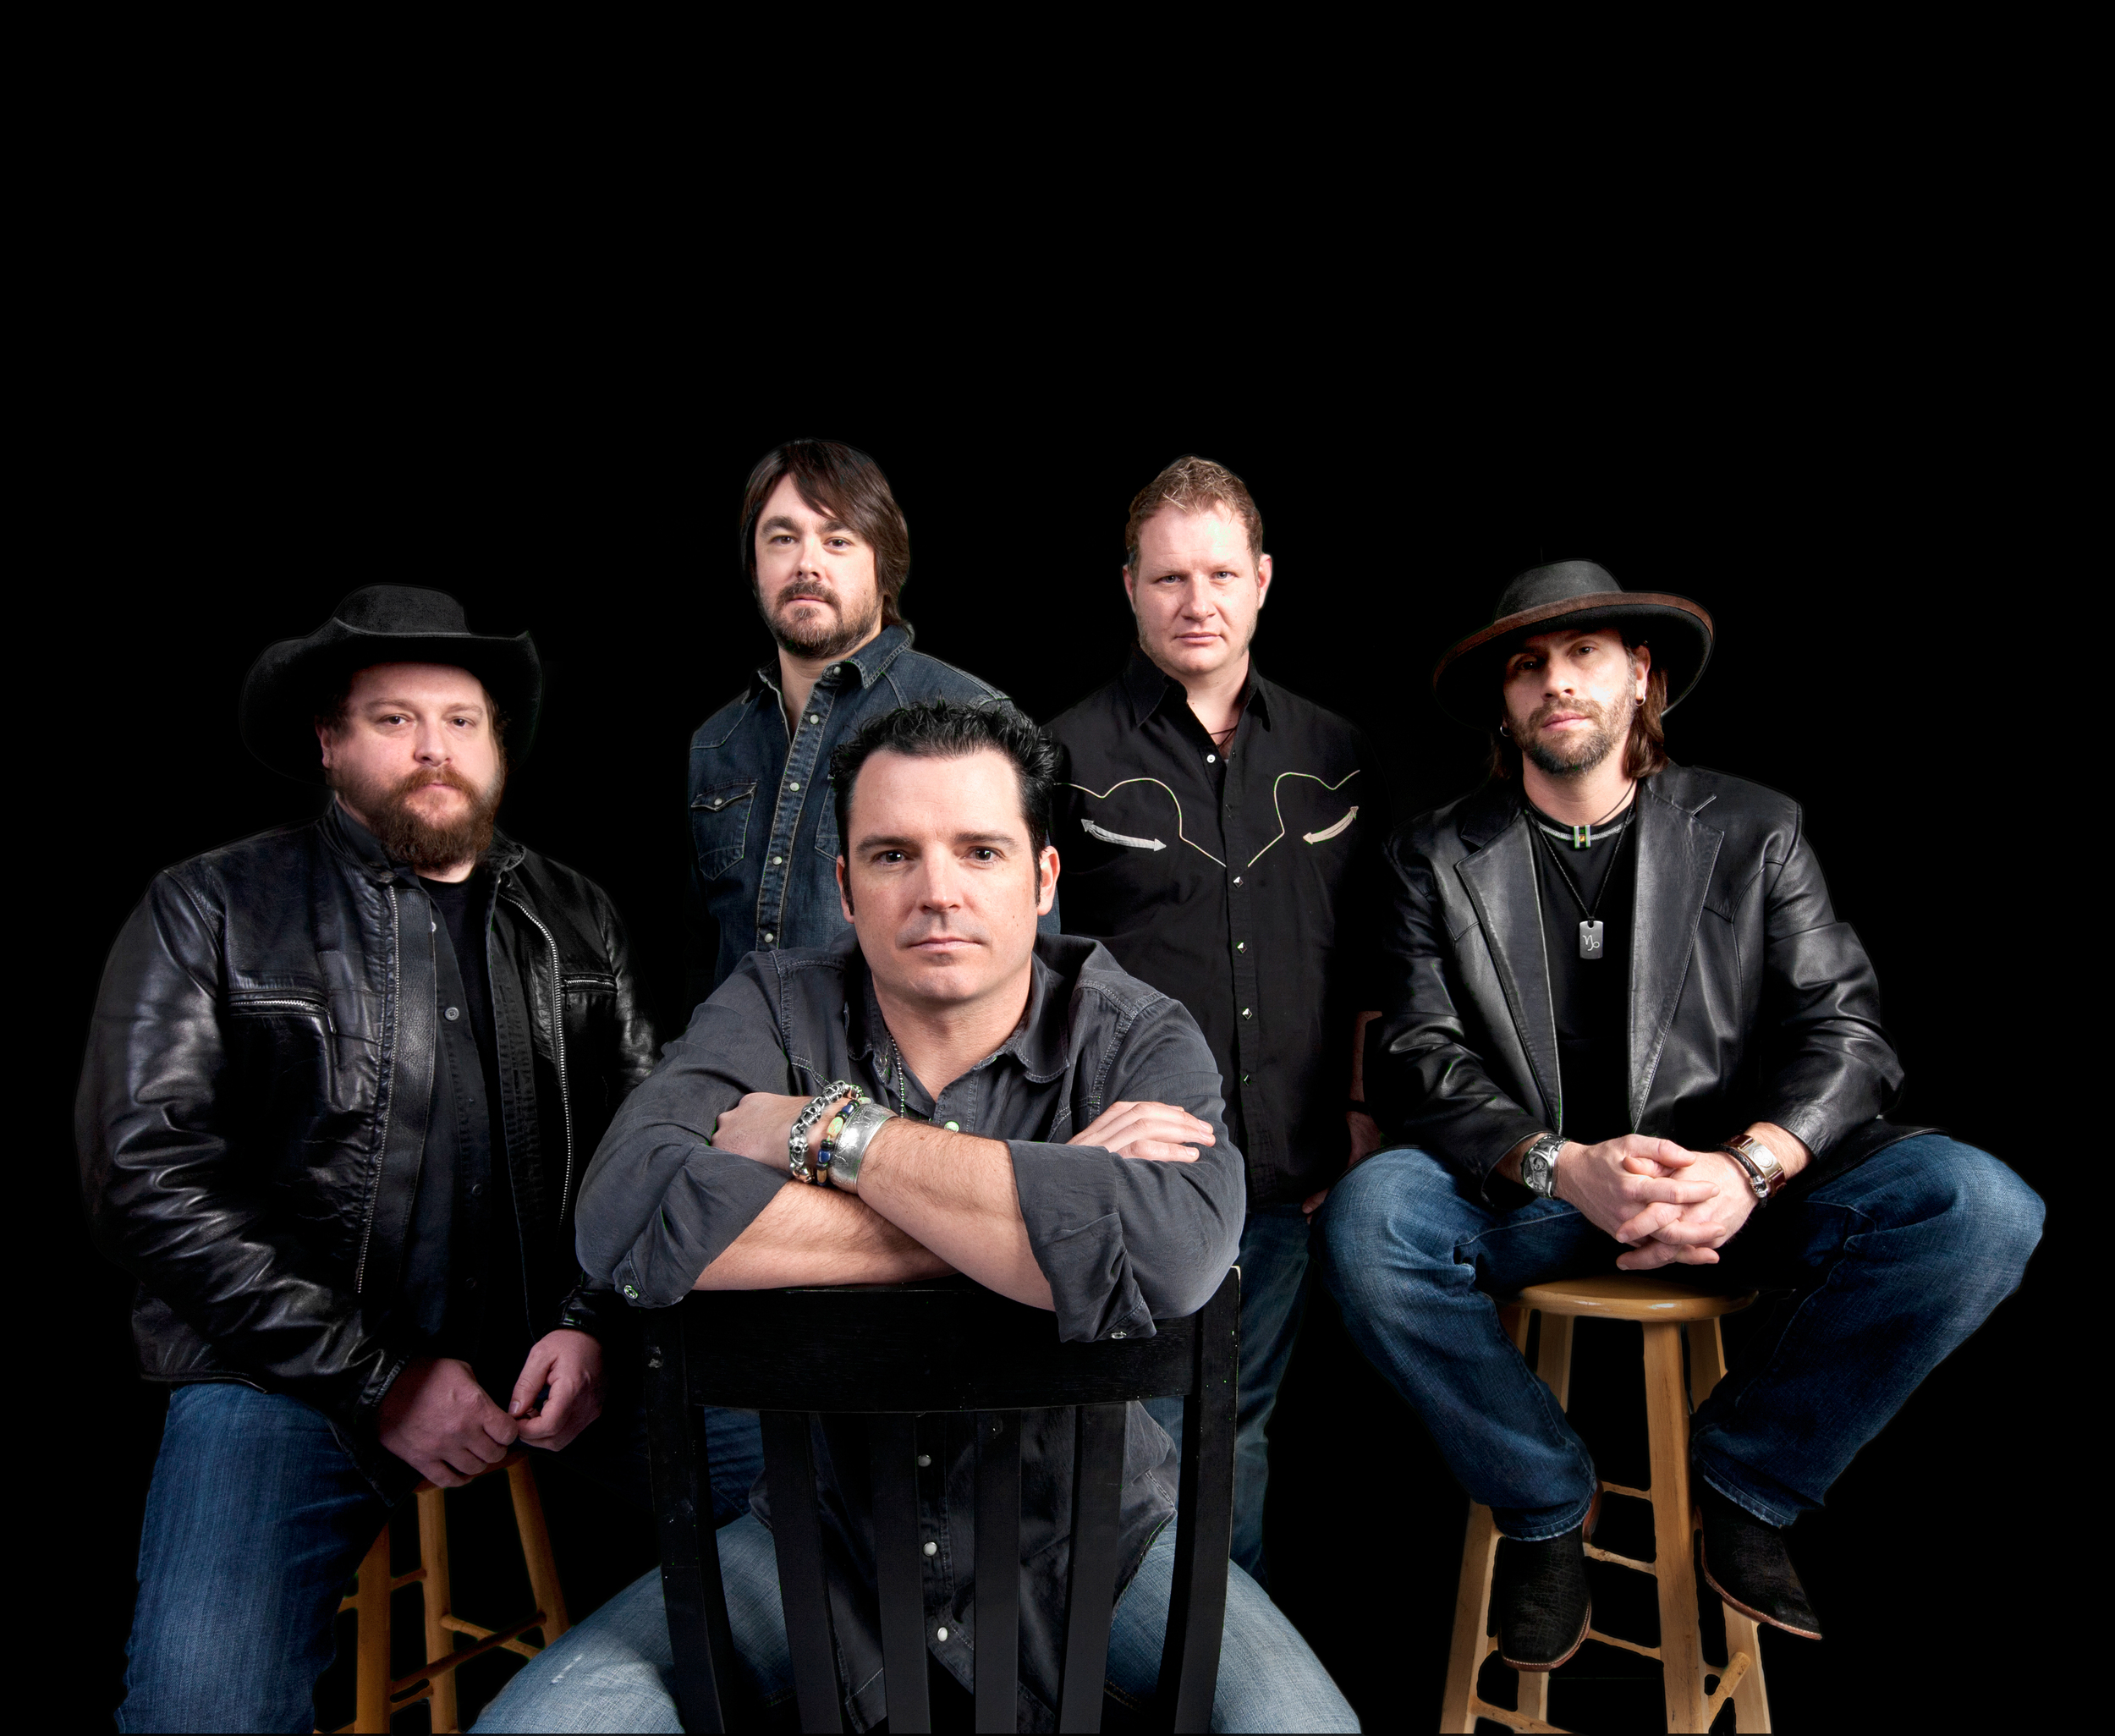 The boys of Reckless Kelly. I interviewed Cody Braun, left in the black hat.